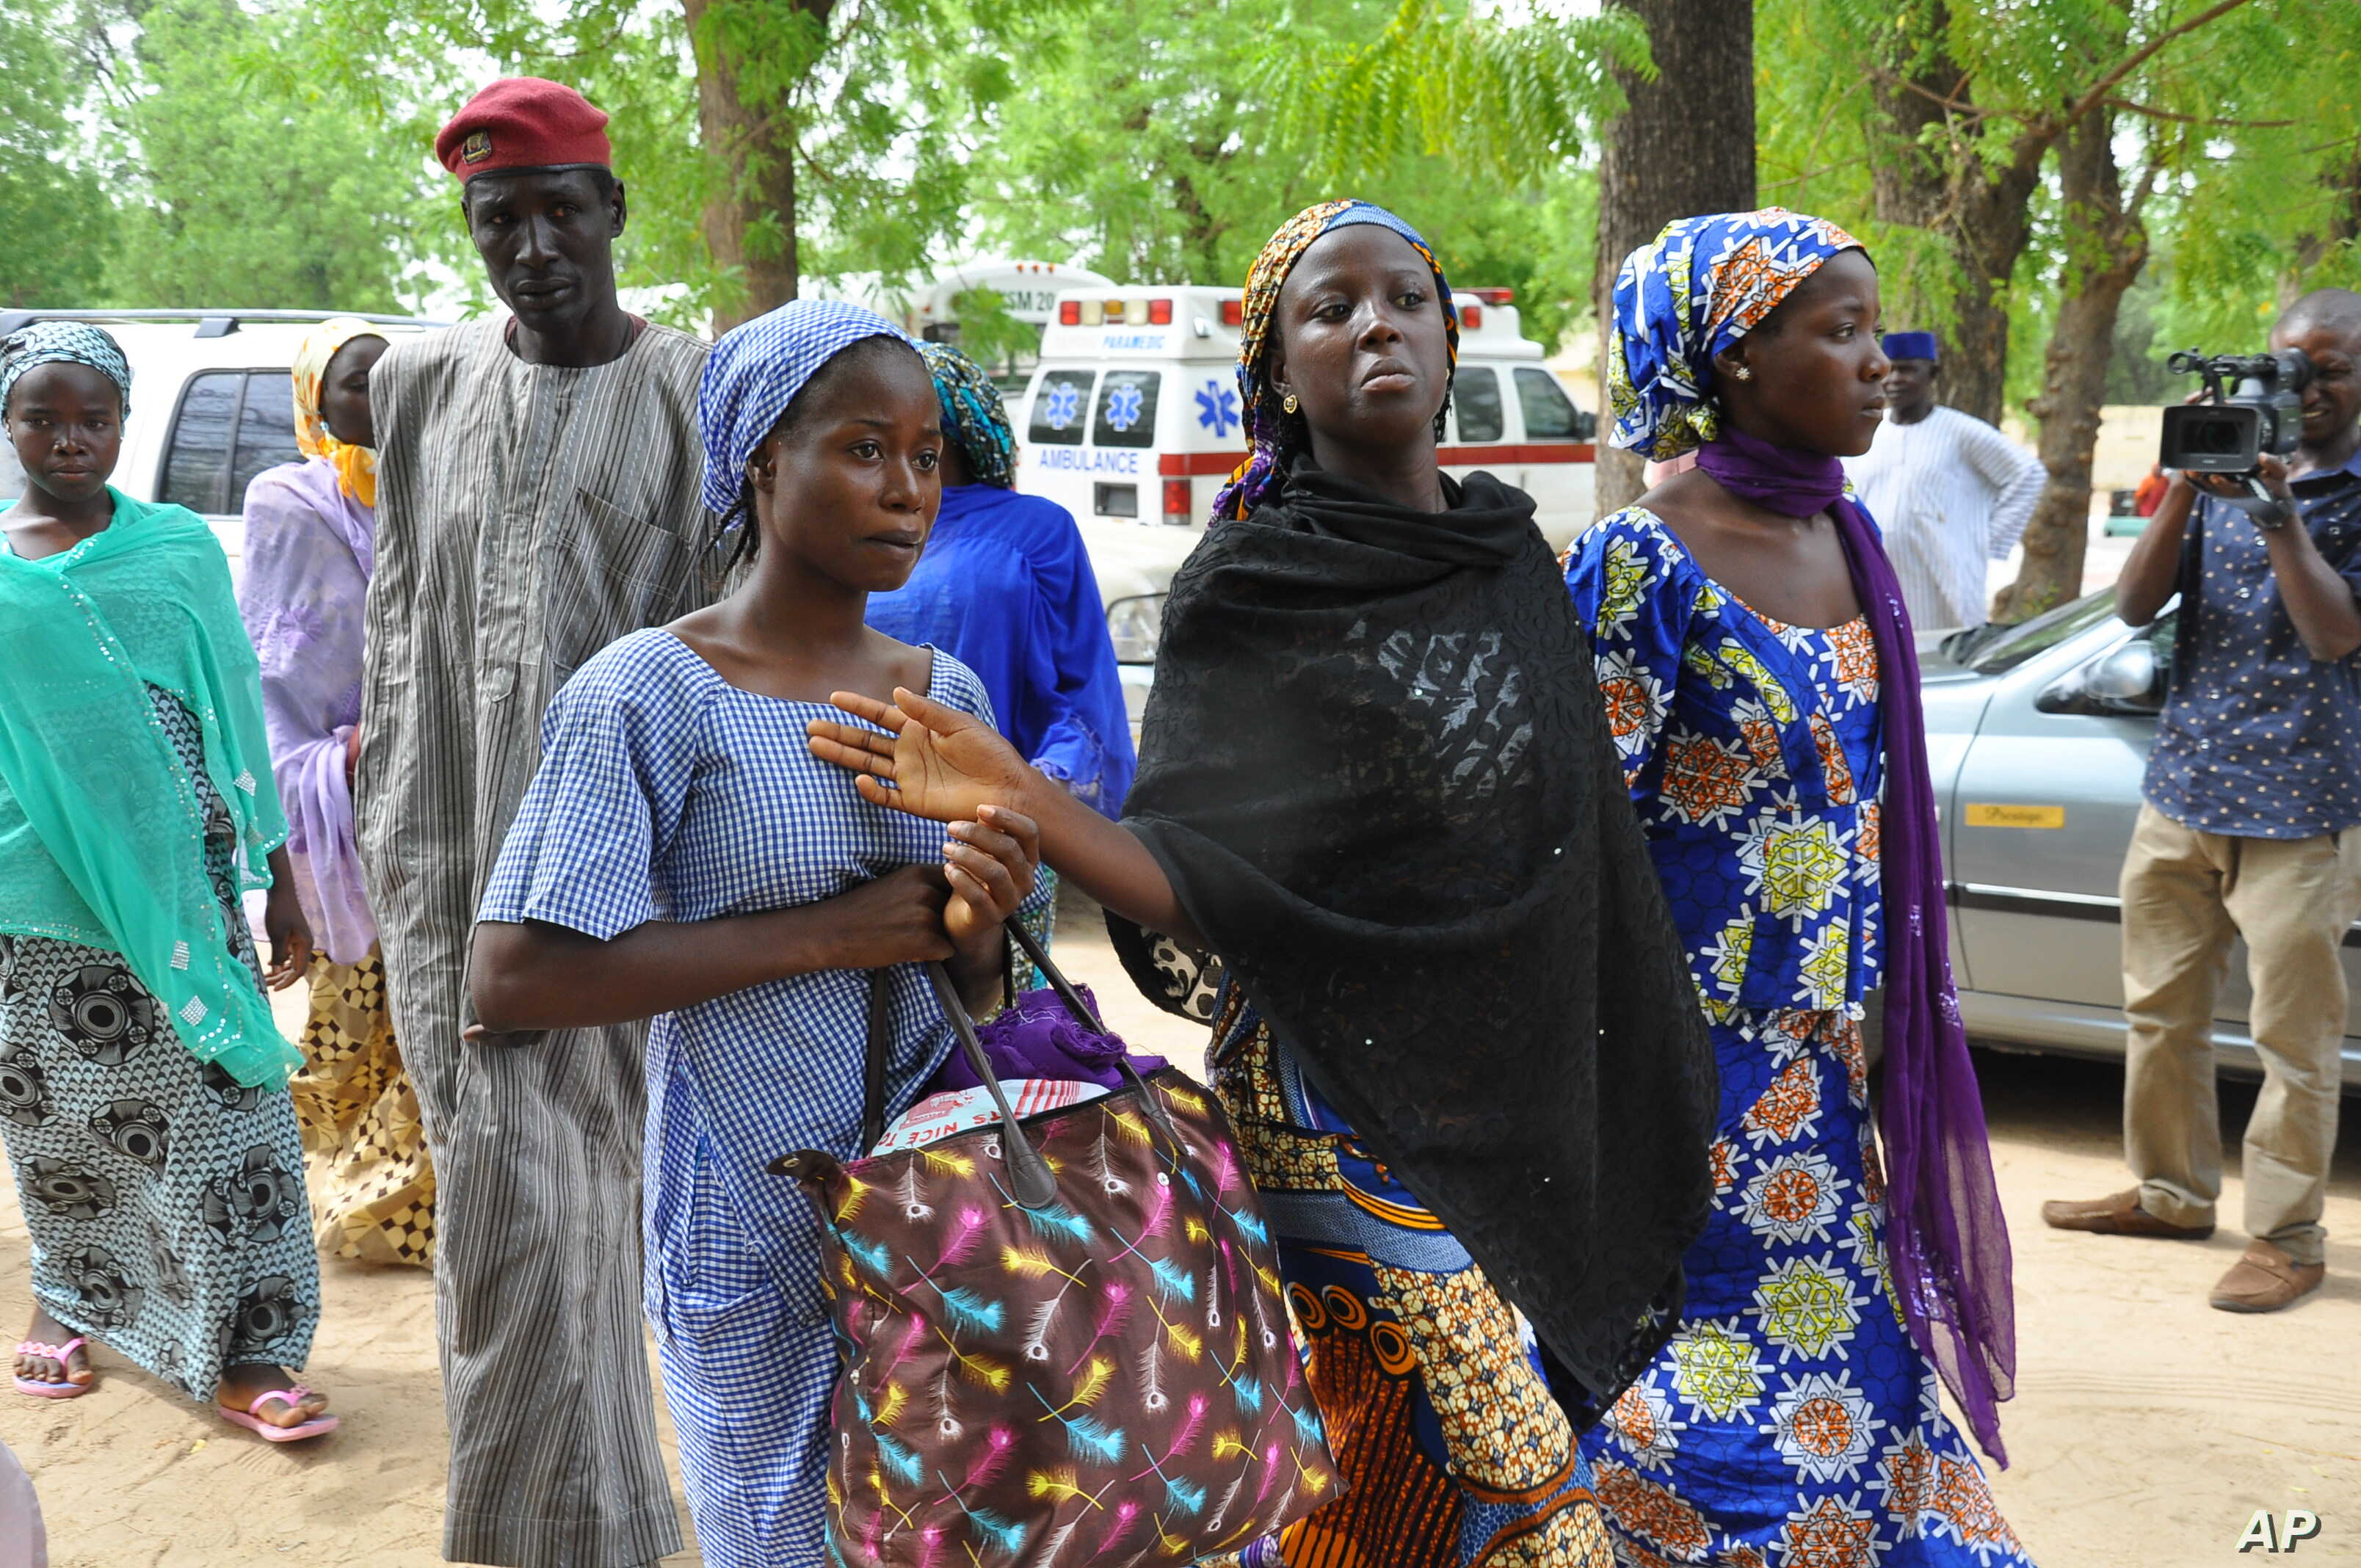 Boko Haram rebels are suspected of abducting dozens of men and boys in Nigeria. Chibok village schoolgirls who escaped the rebels are shown before meeting with Borno state's governor in Maiduguri June 2, 2014.